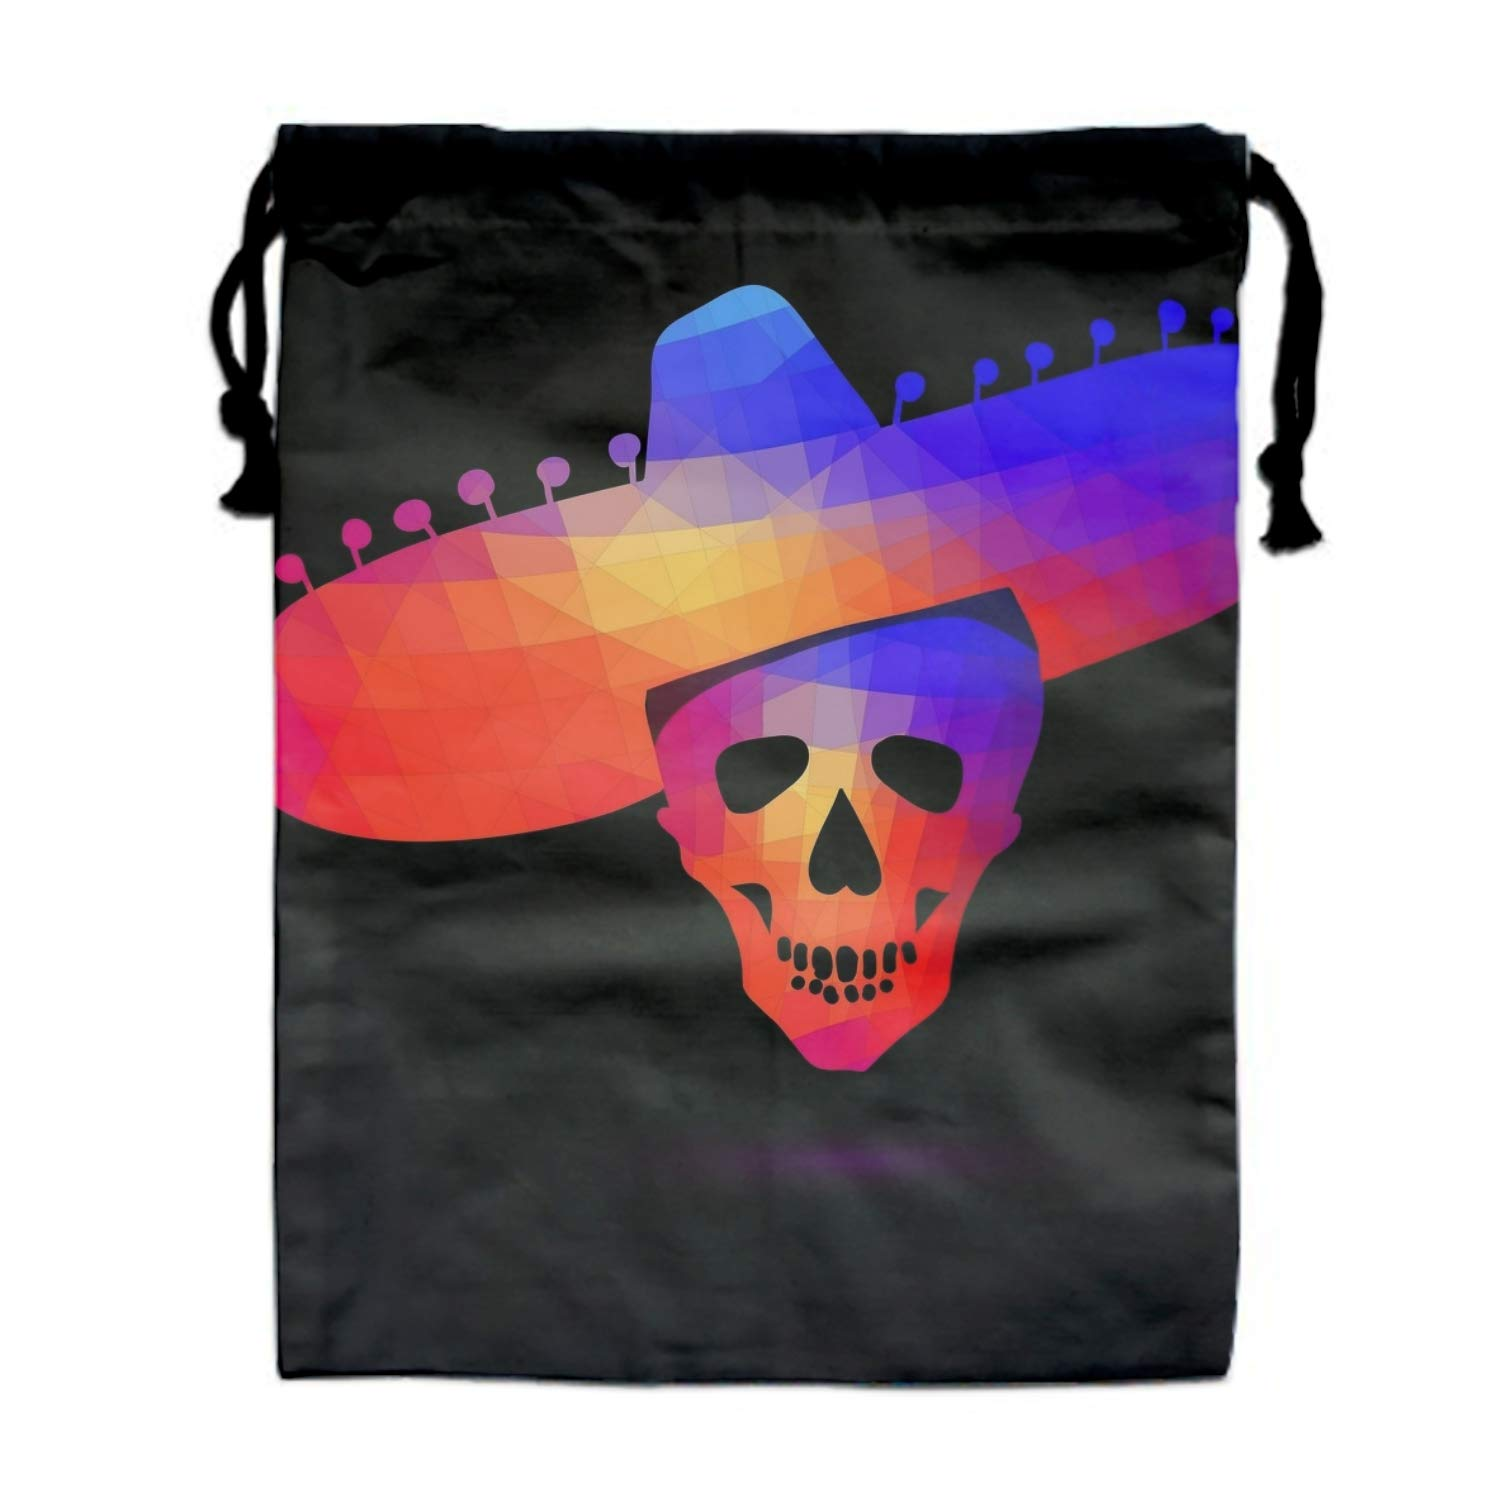 Shining Pirate Party Supplies Favors Bags Drawstring Gifts Bags